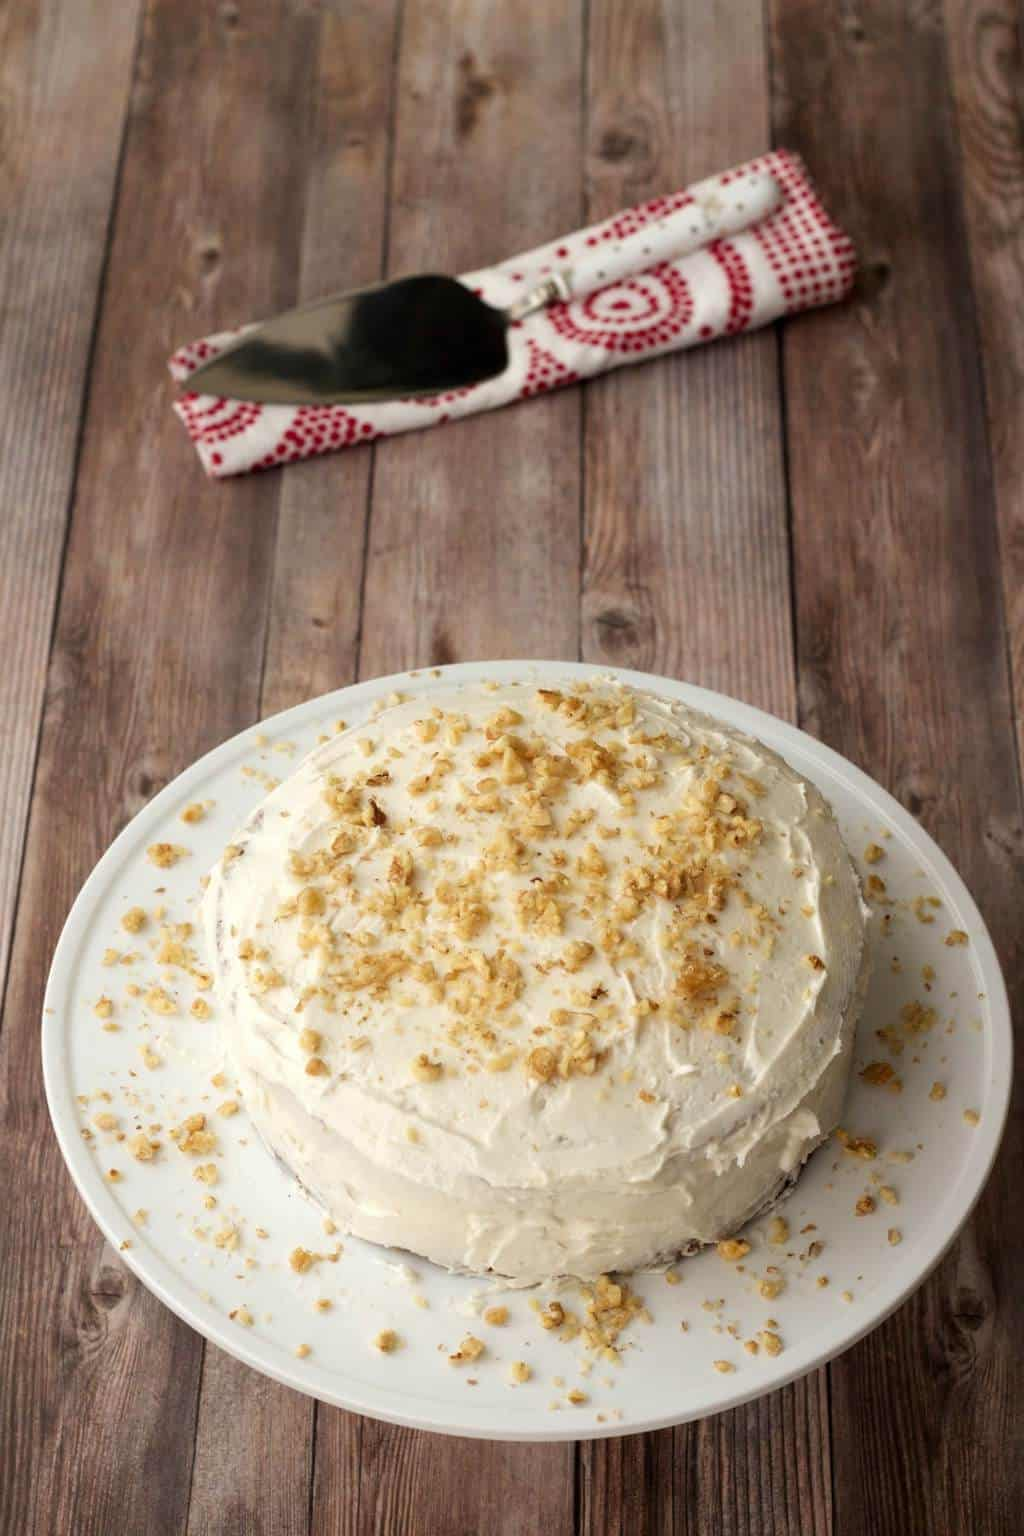 Vegan carrot cake topped with lemon buttercream frosting and crushed walnuts on a white cake stand.